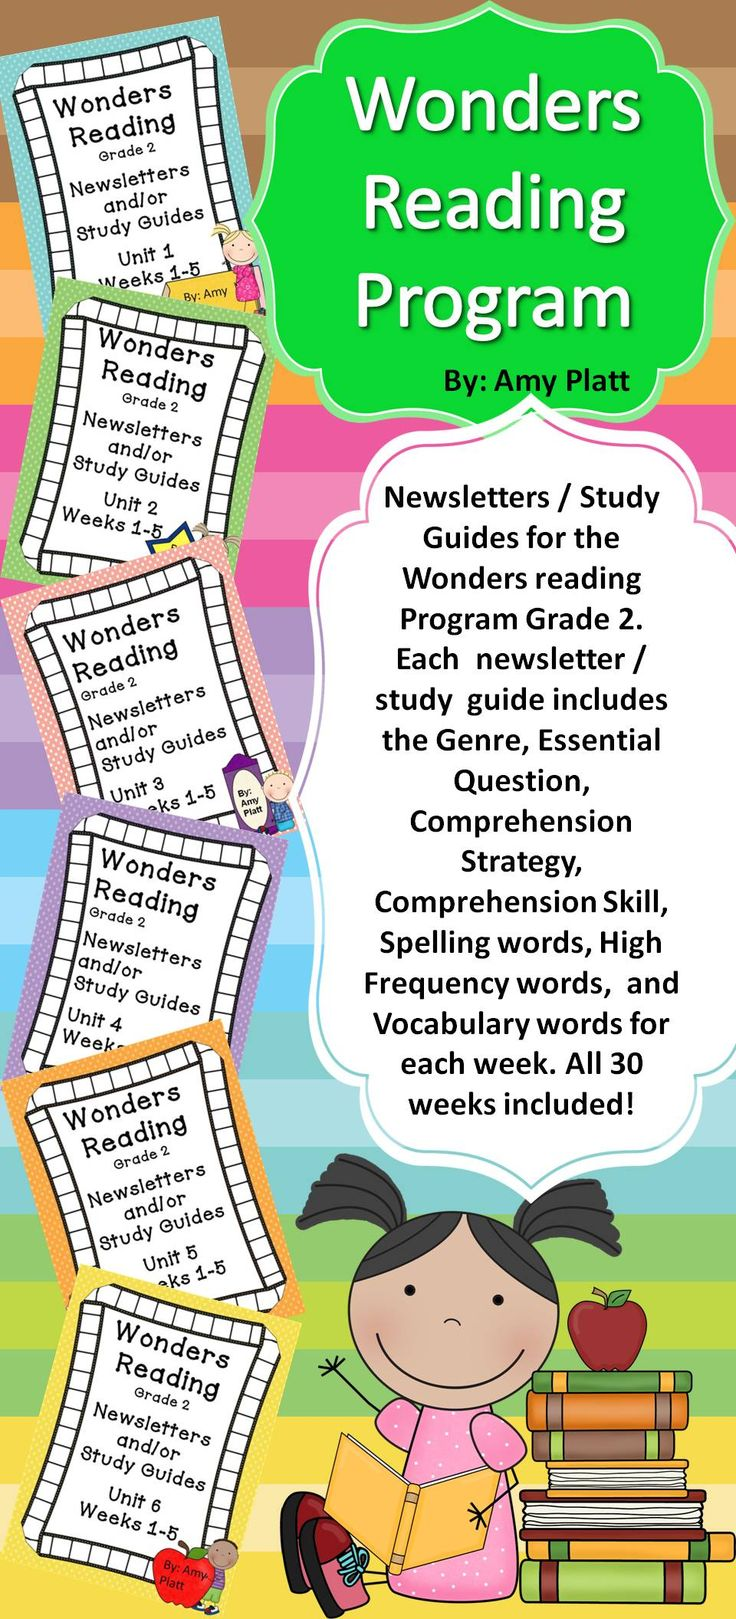 These are Newsletters / Study Guides that supplement the McGraw Hill Wonders Reading Program Grade 2.  All 30 Weeks included!